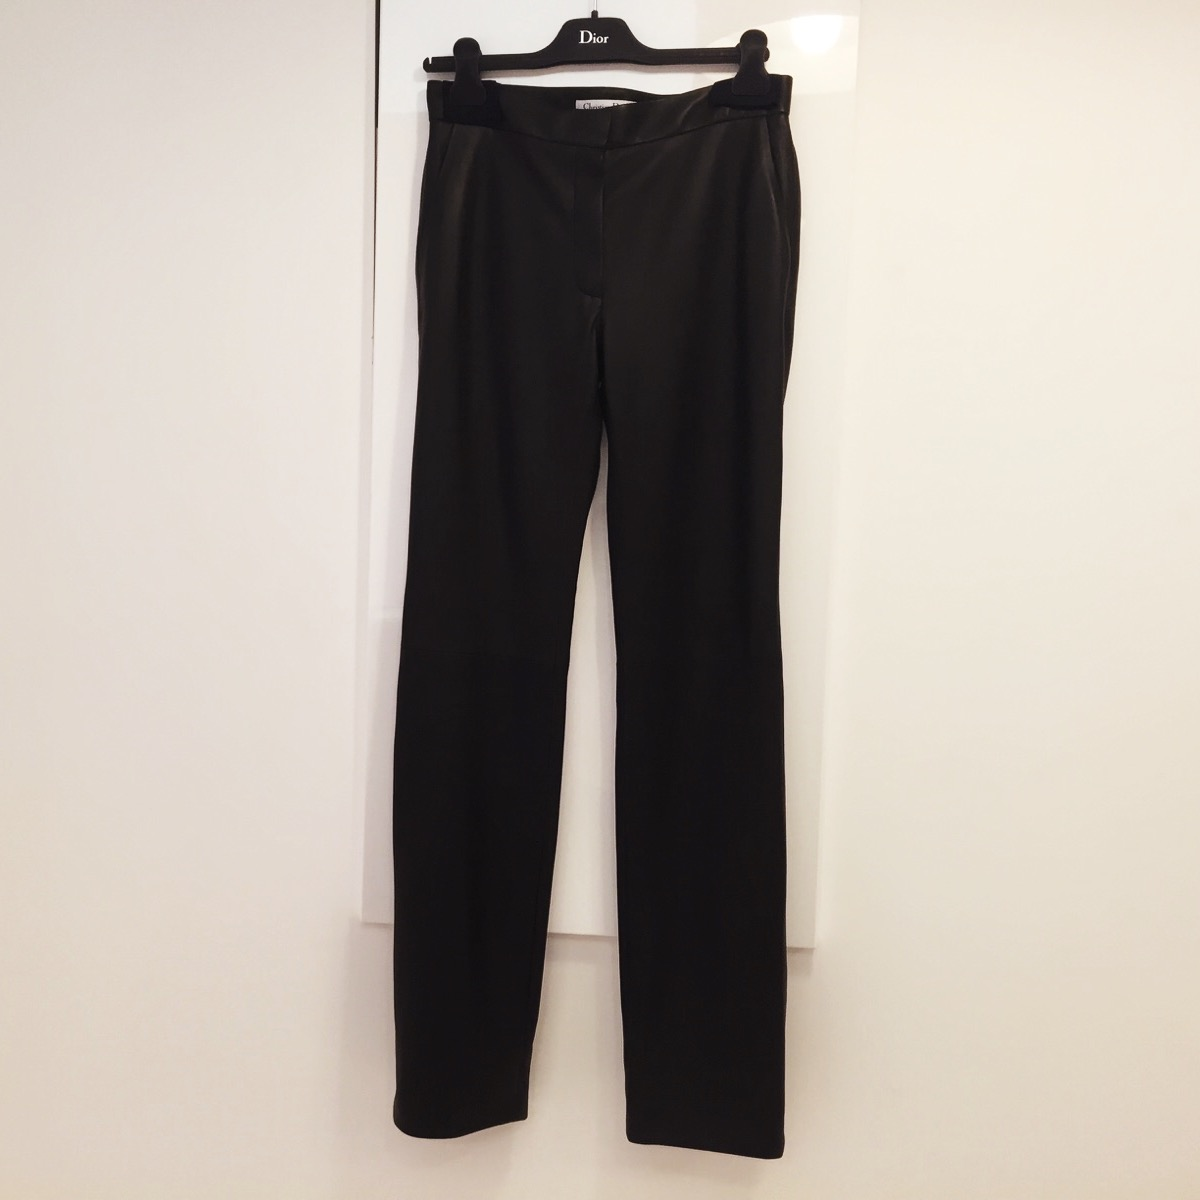 We shortened the hem on these Dior leather trousers...